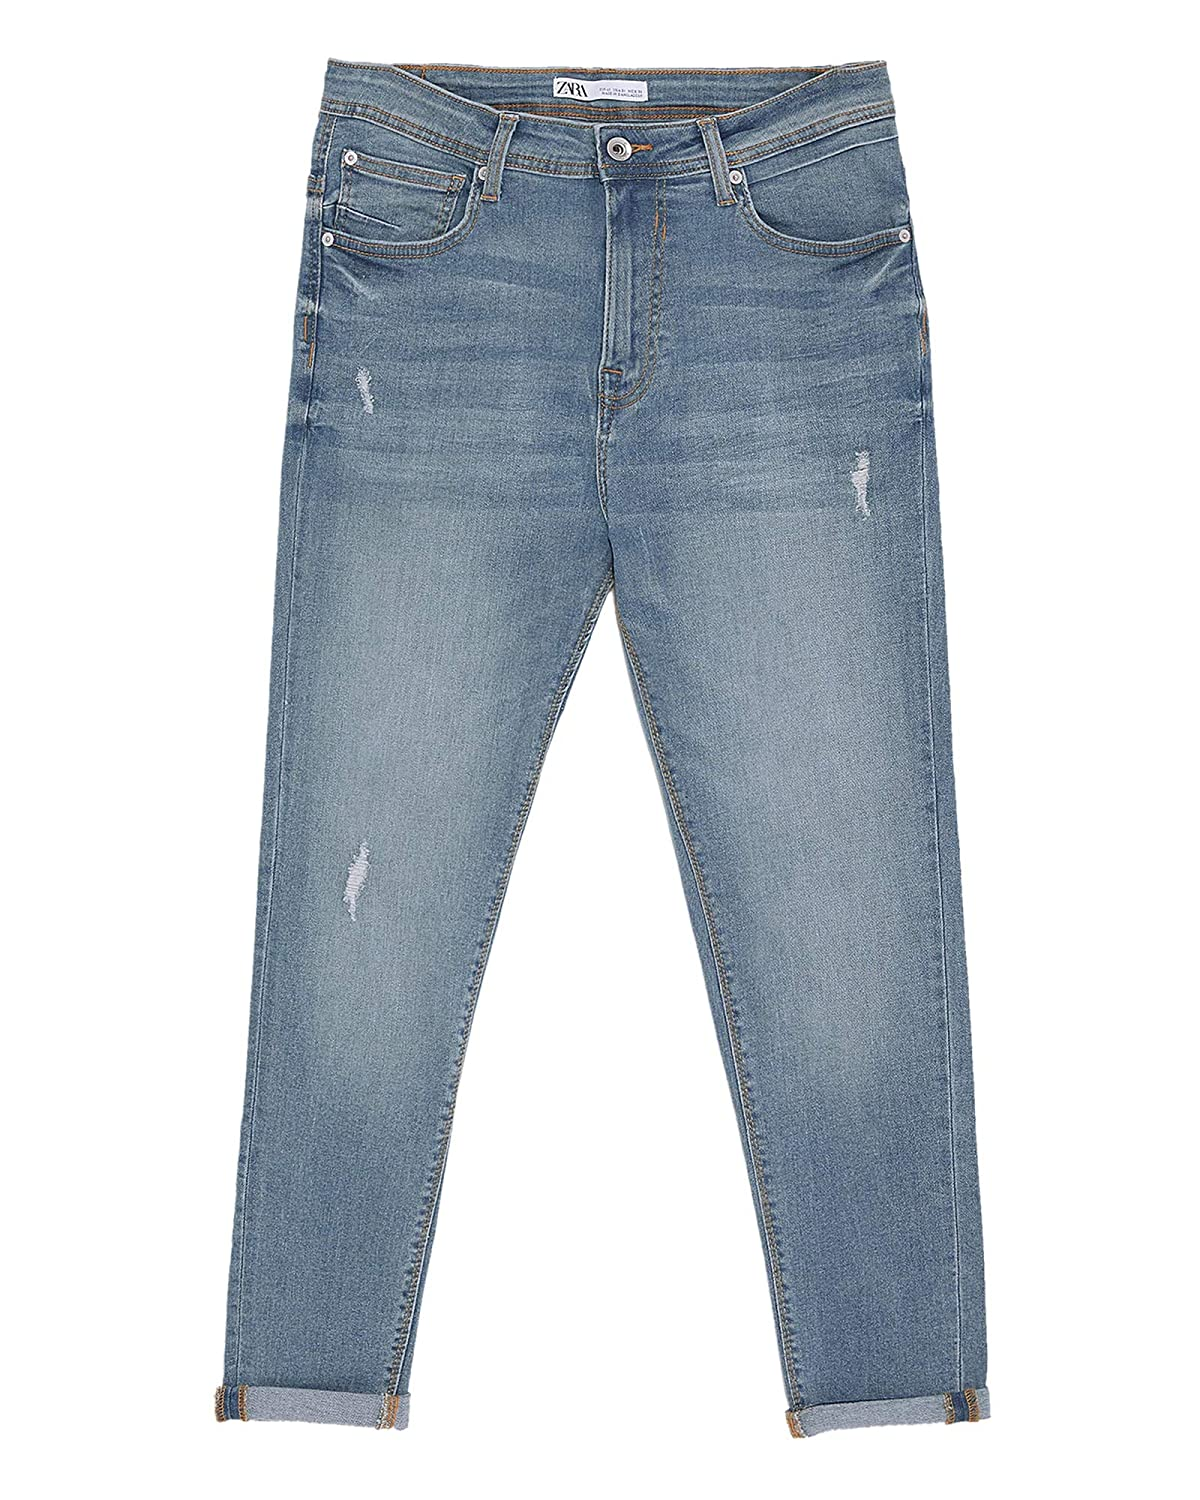 384ca170 Zara Men's Ripped Carrot fit Jeans 7223/461: Amazon.co.uk: Clothing